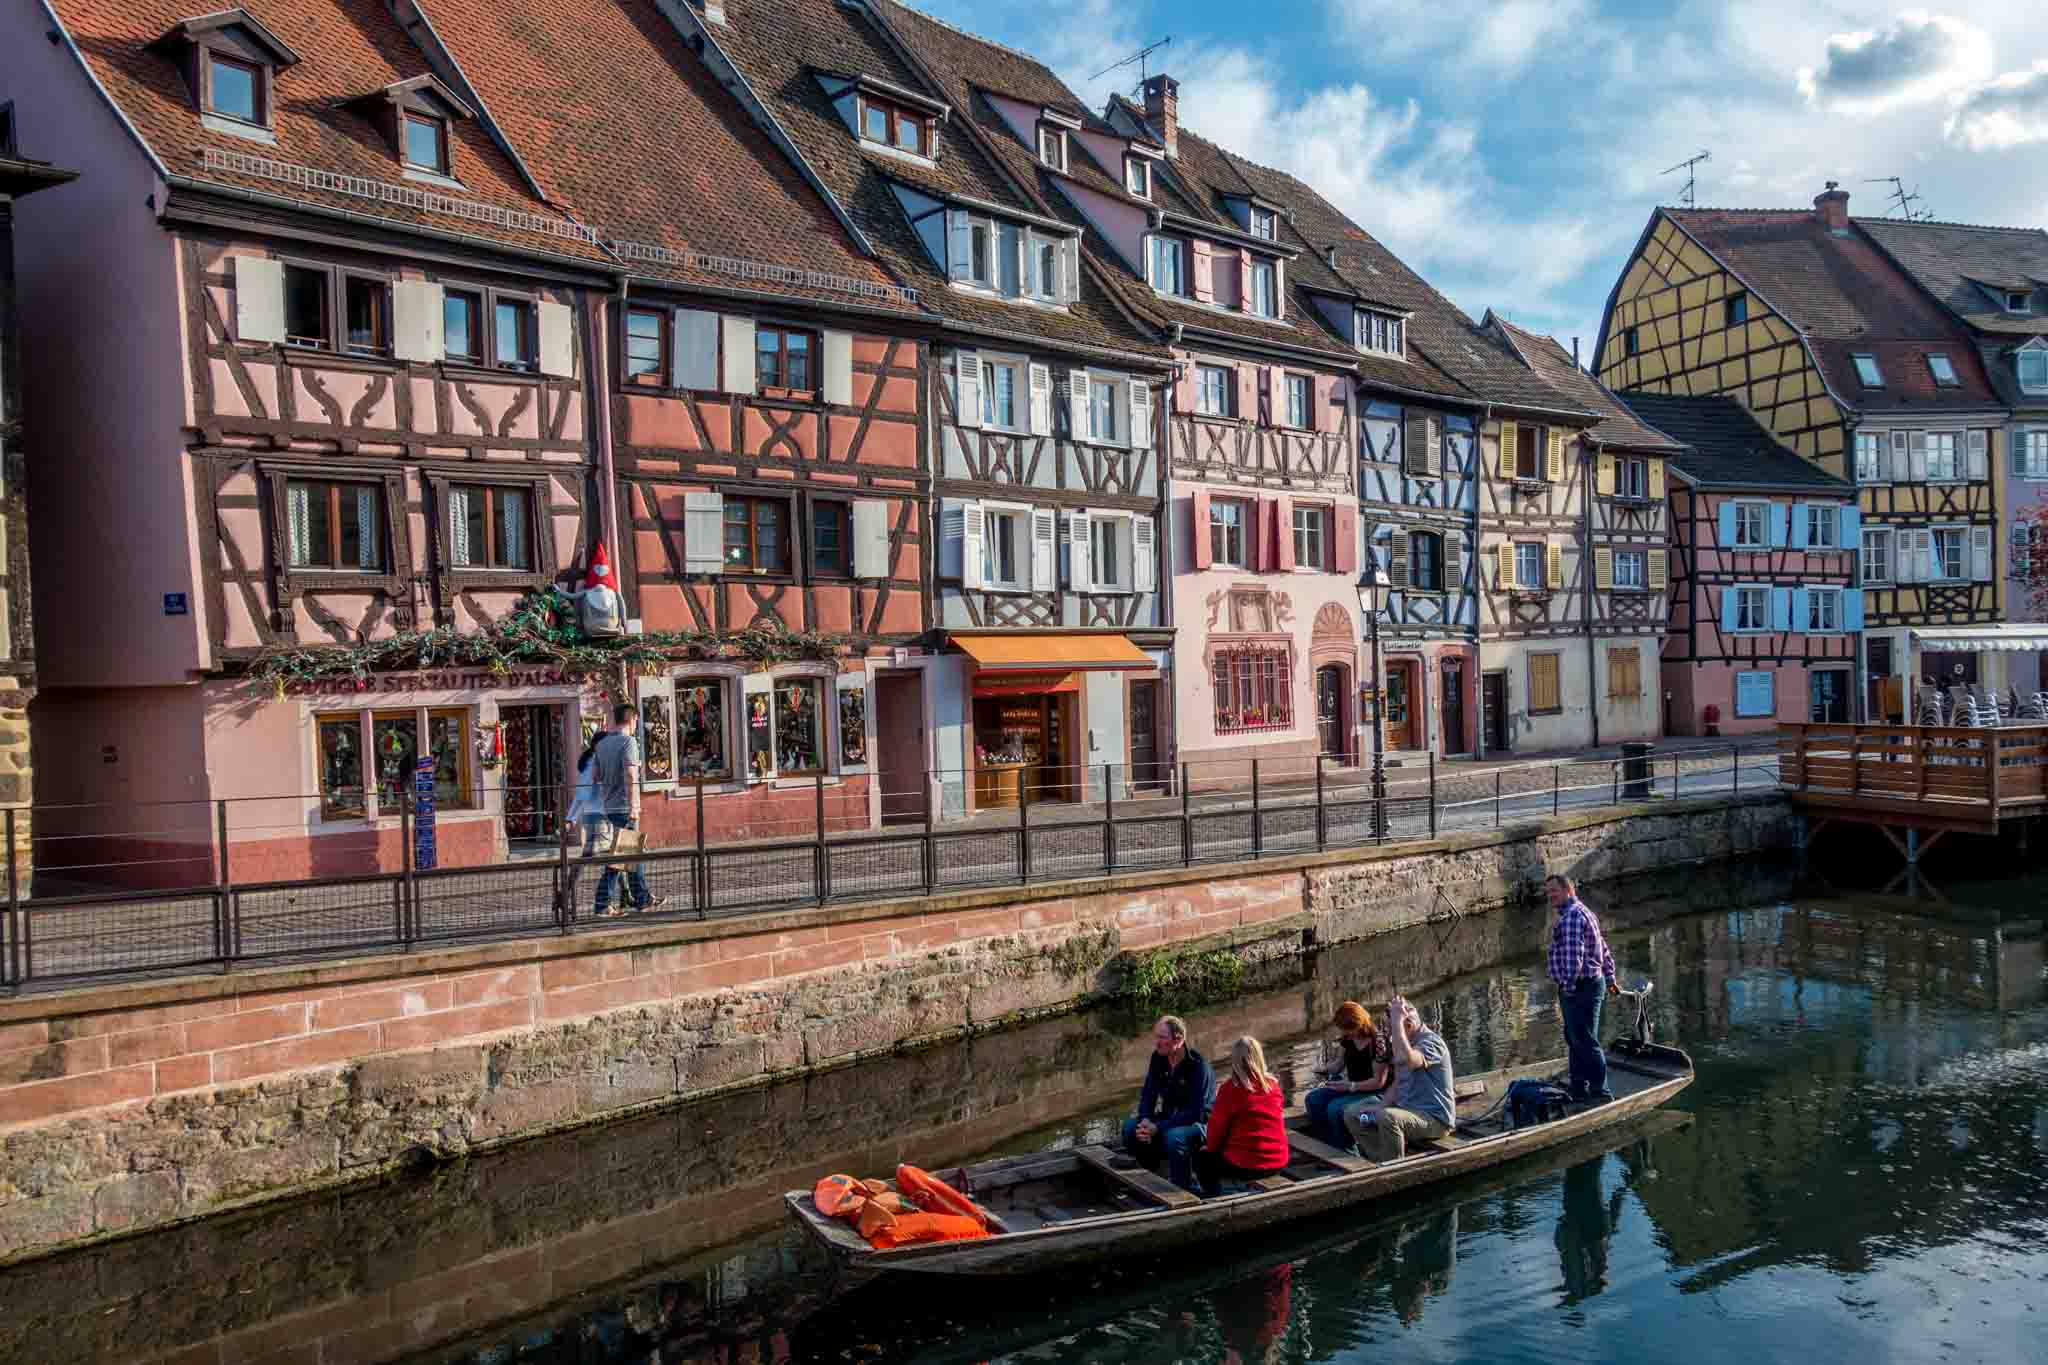 Boat floating by the colorful buildings of Colmar